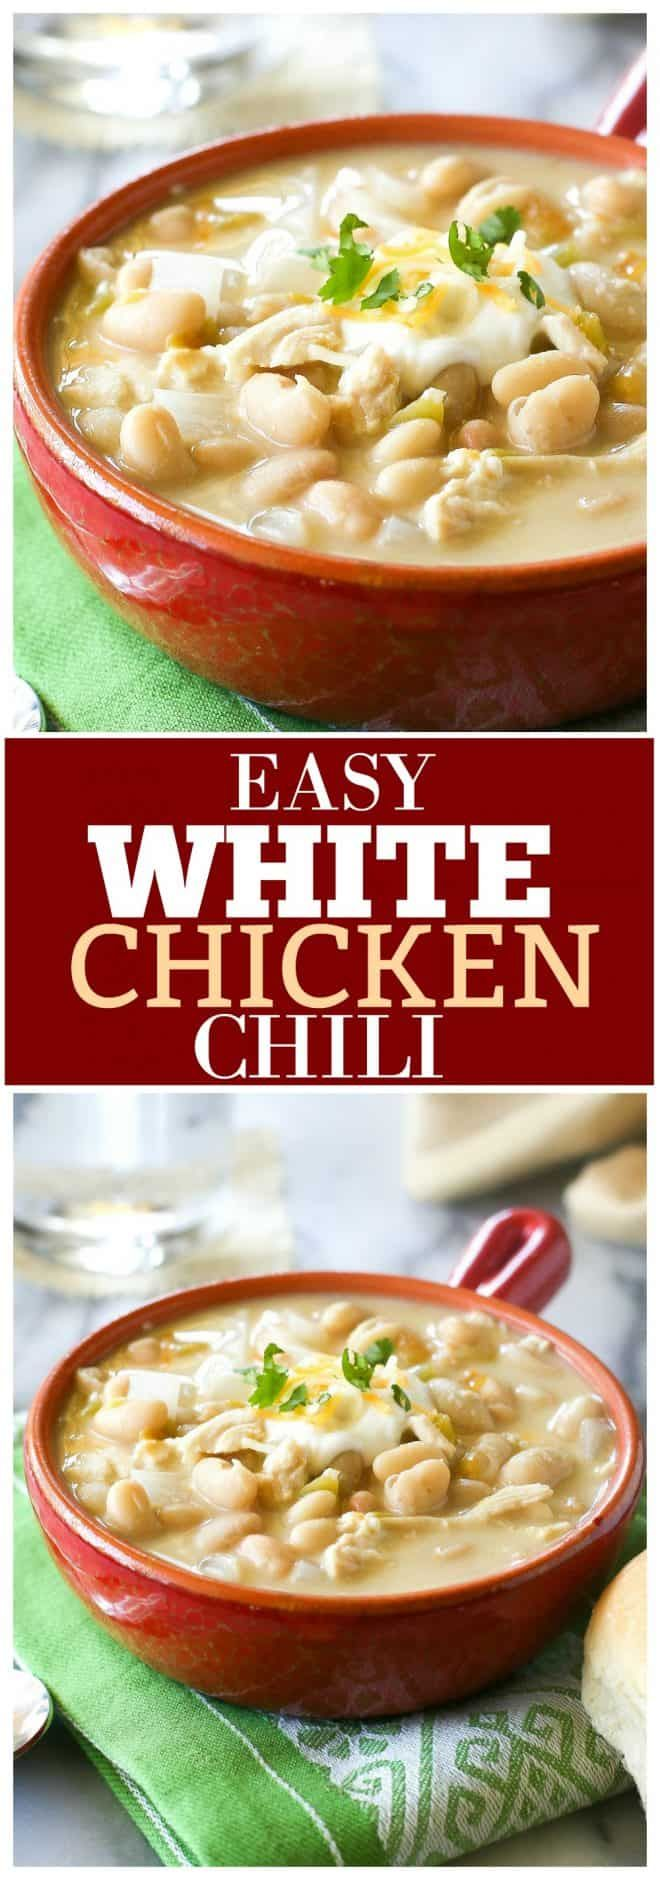 White Chicken Chili Recipe - The Girl Who Ate Everything